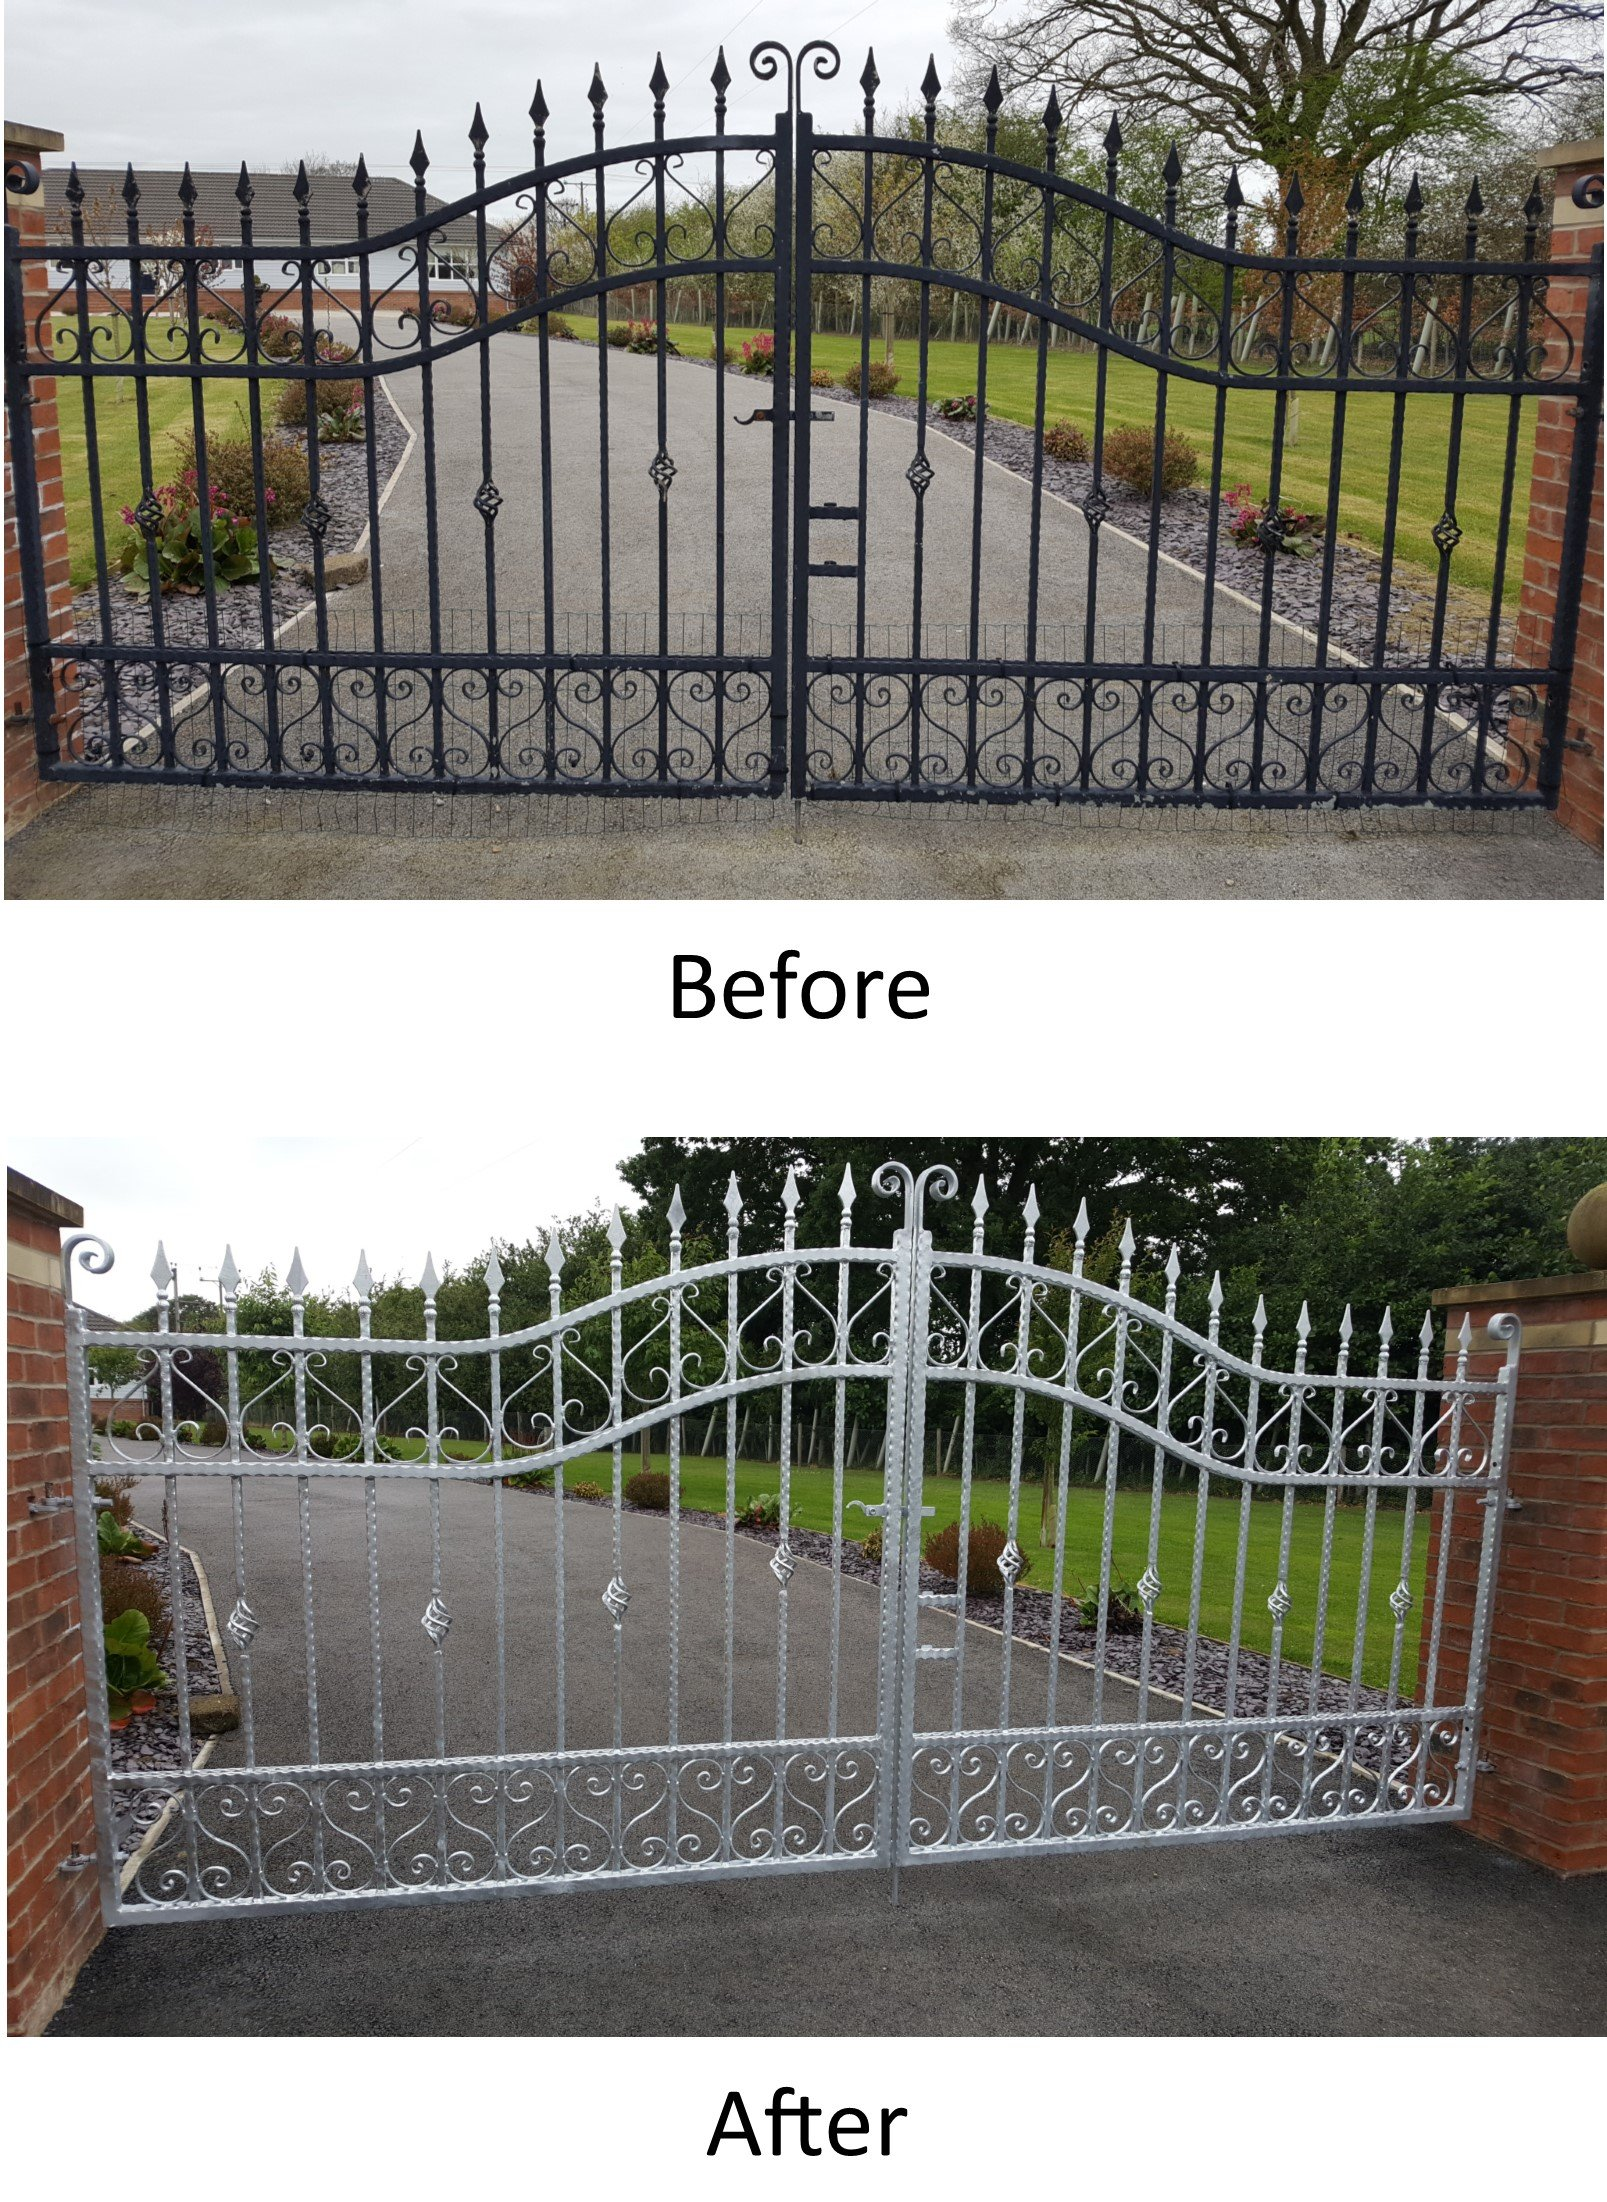 Existing gates shot blasted, galvanised & re-fitted.